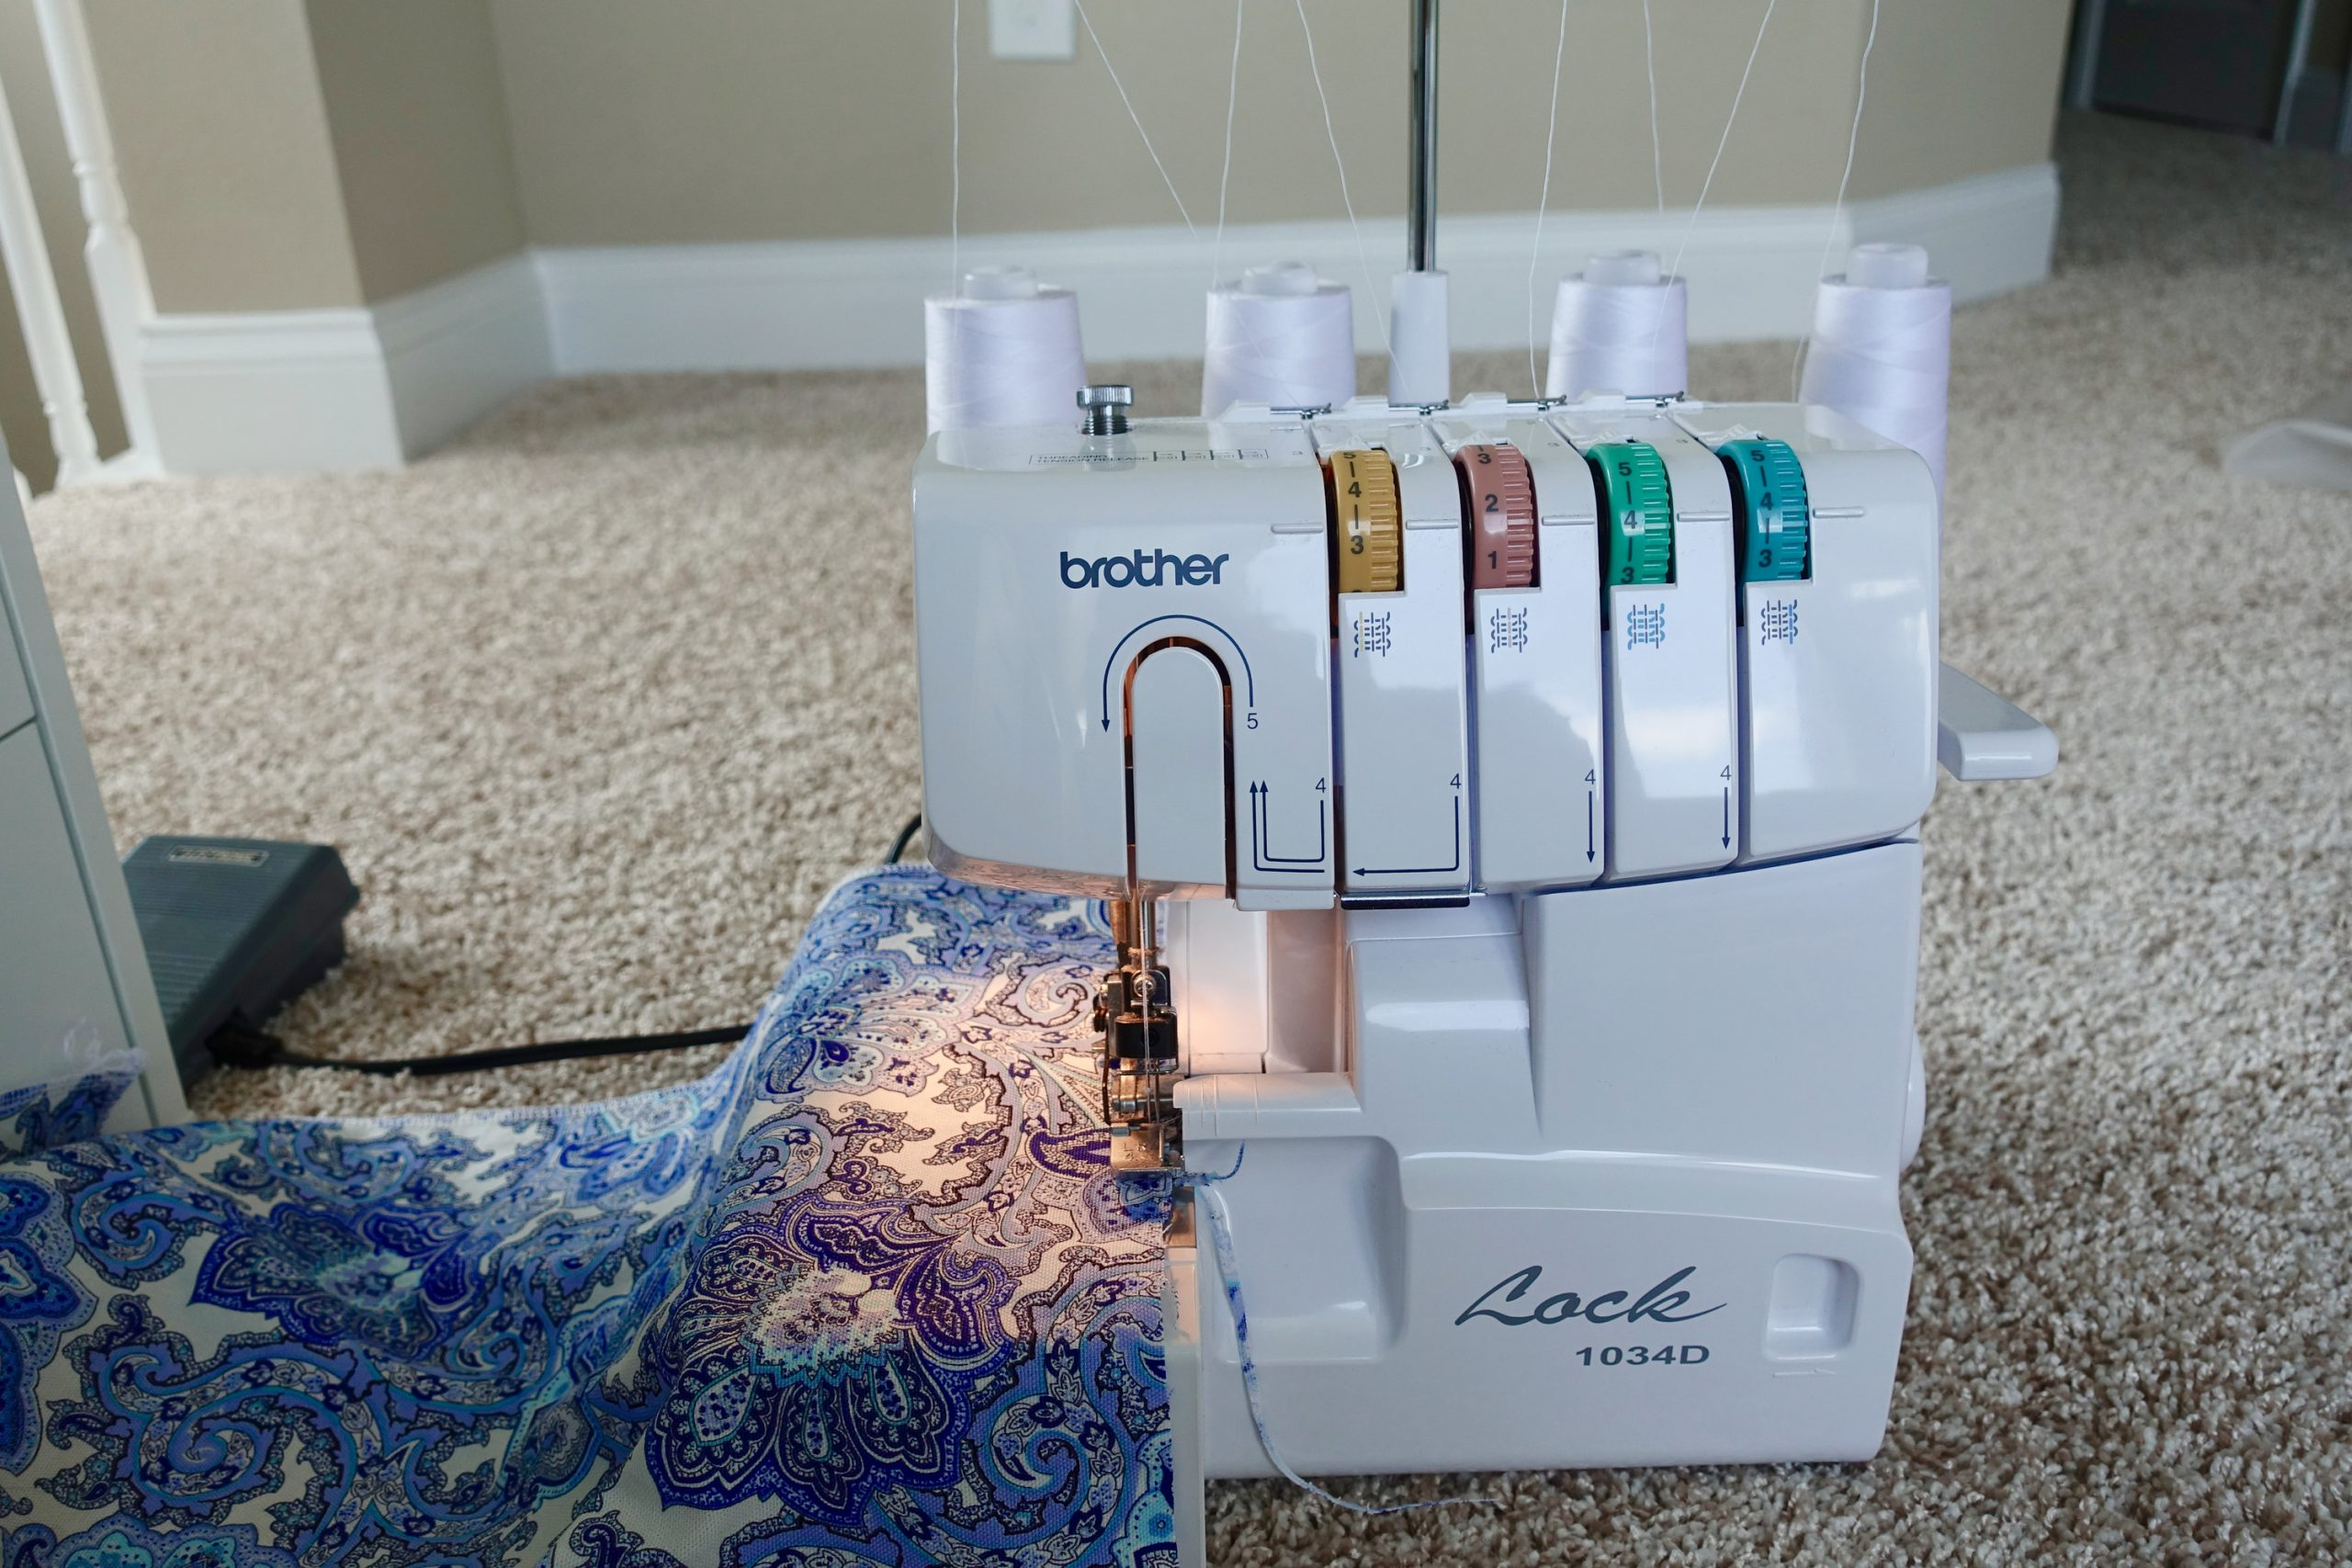 Adjusting the tension on a serger is one of the serger hacks mentioned in this article.